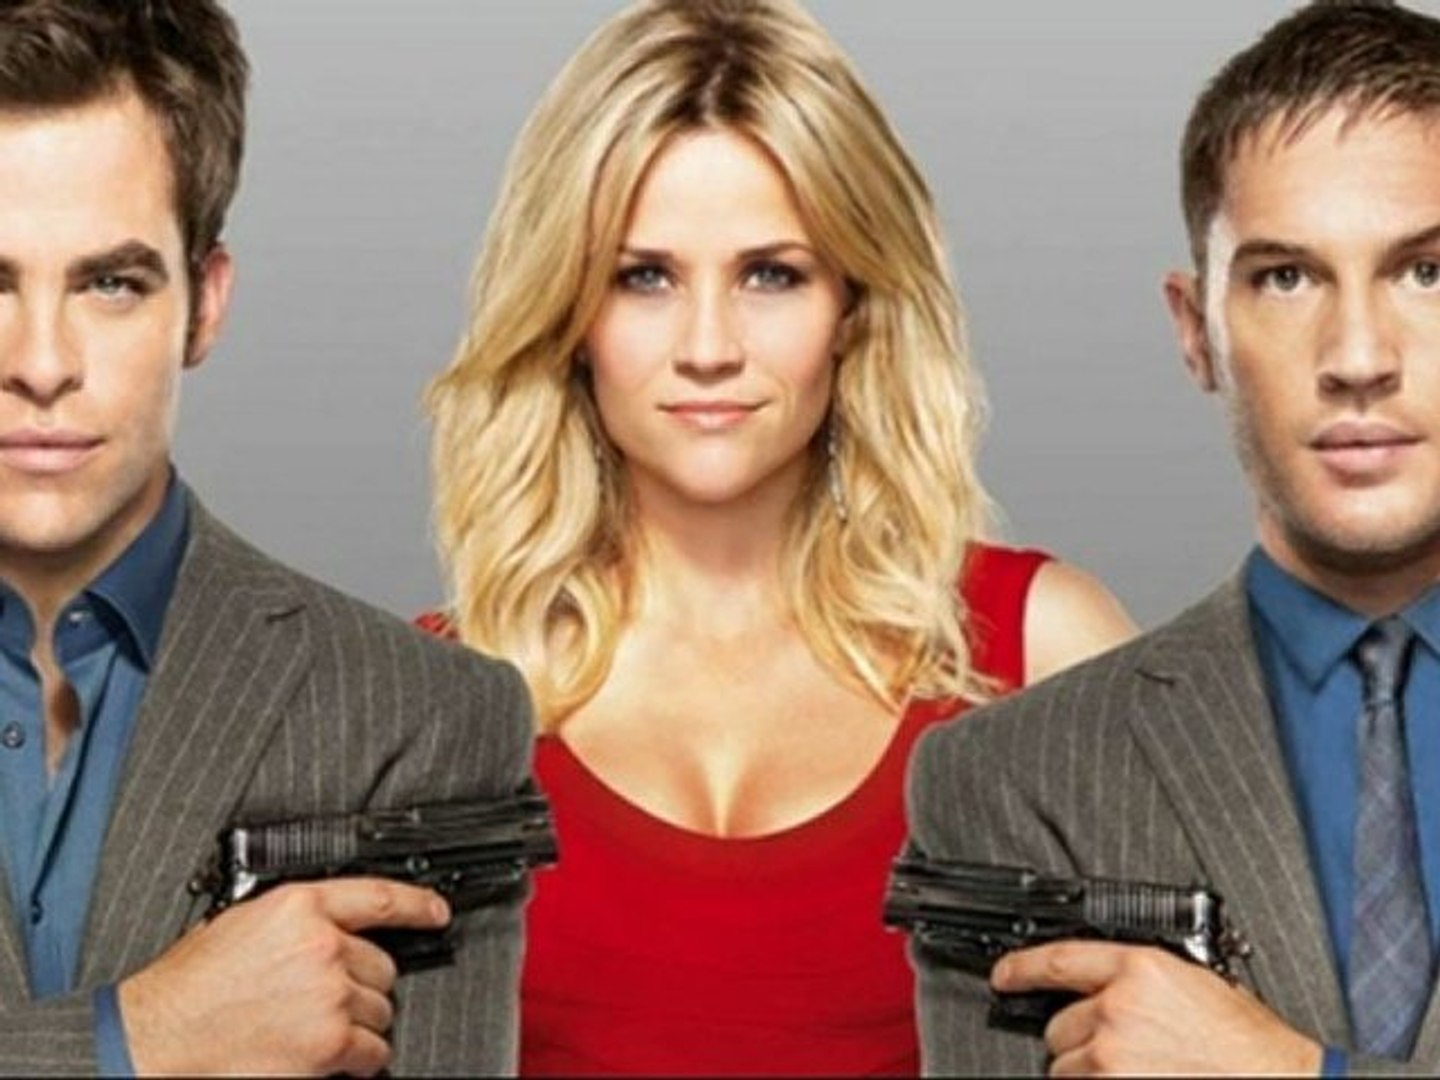 Download This Means War Movie 2012 HD Free Full Movie Complete Length Movie